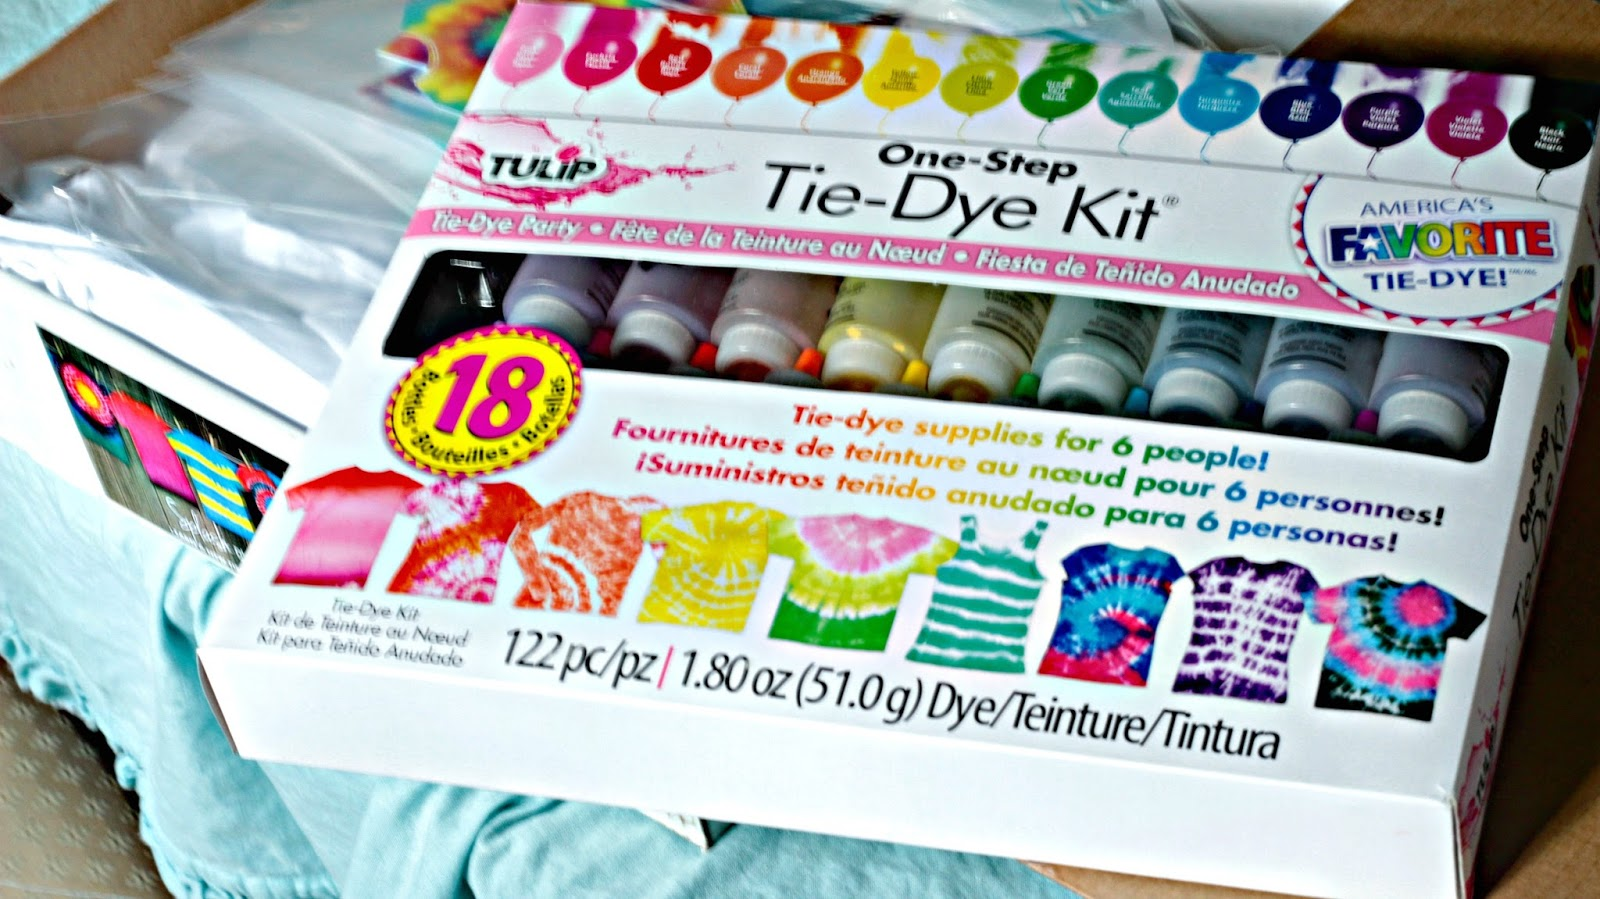 22a69b91b885 The One-Step Tie-Dye Kit by Tulip makes tie-dying so easy! The kit not only  included 18 different dyes but gloves